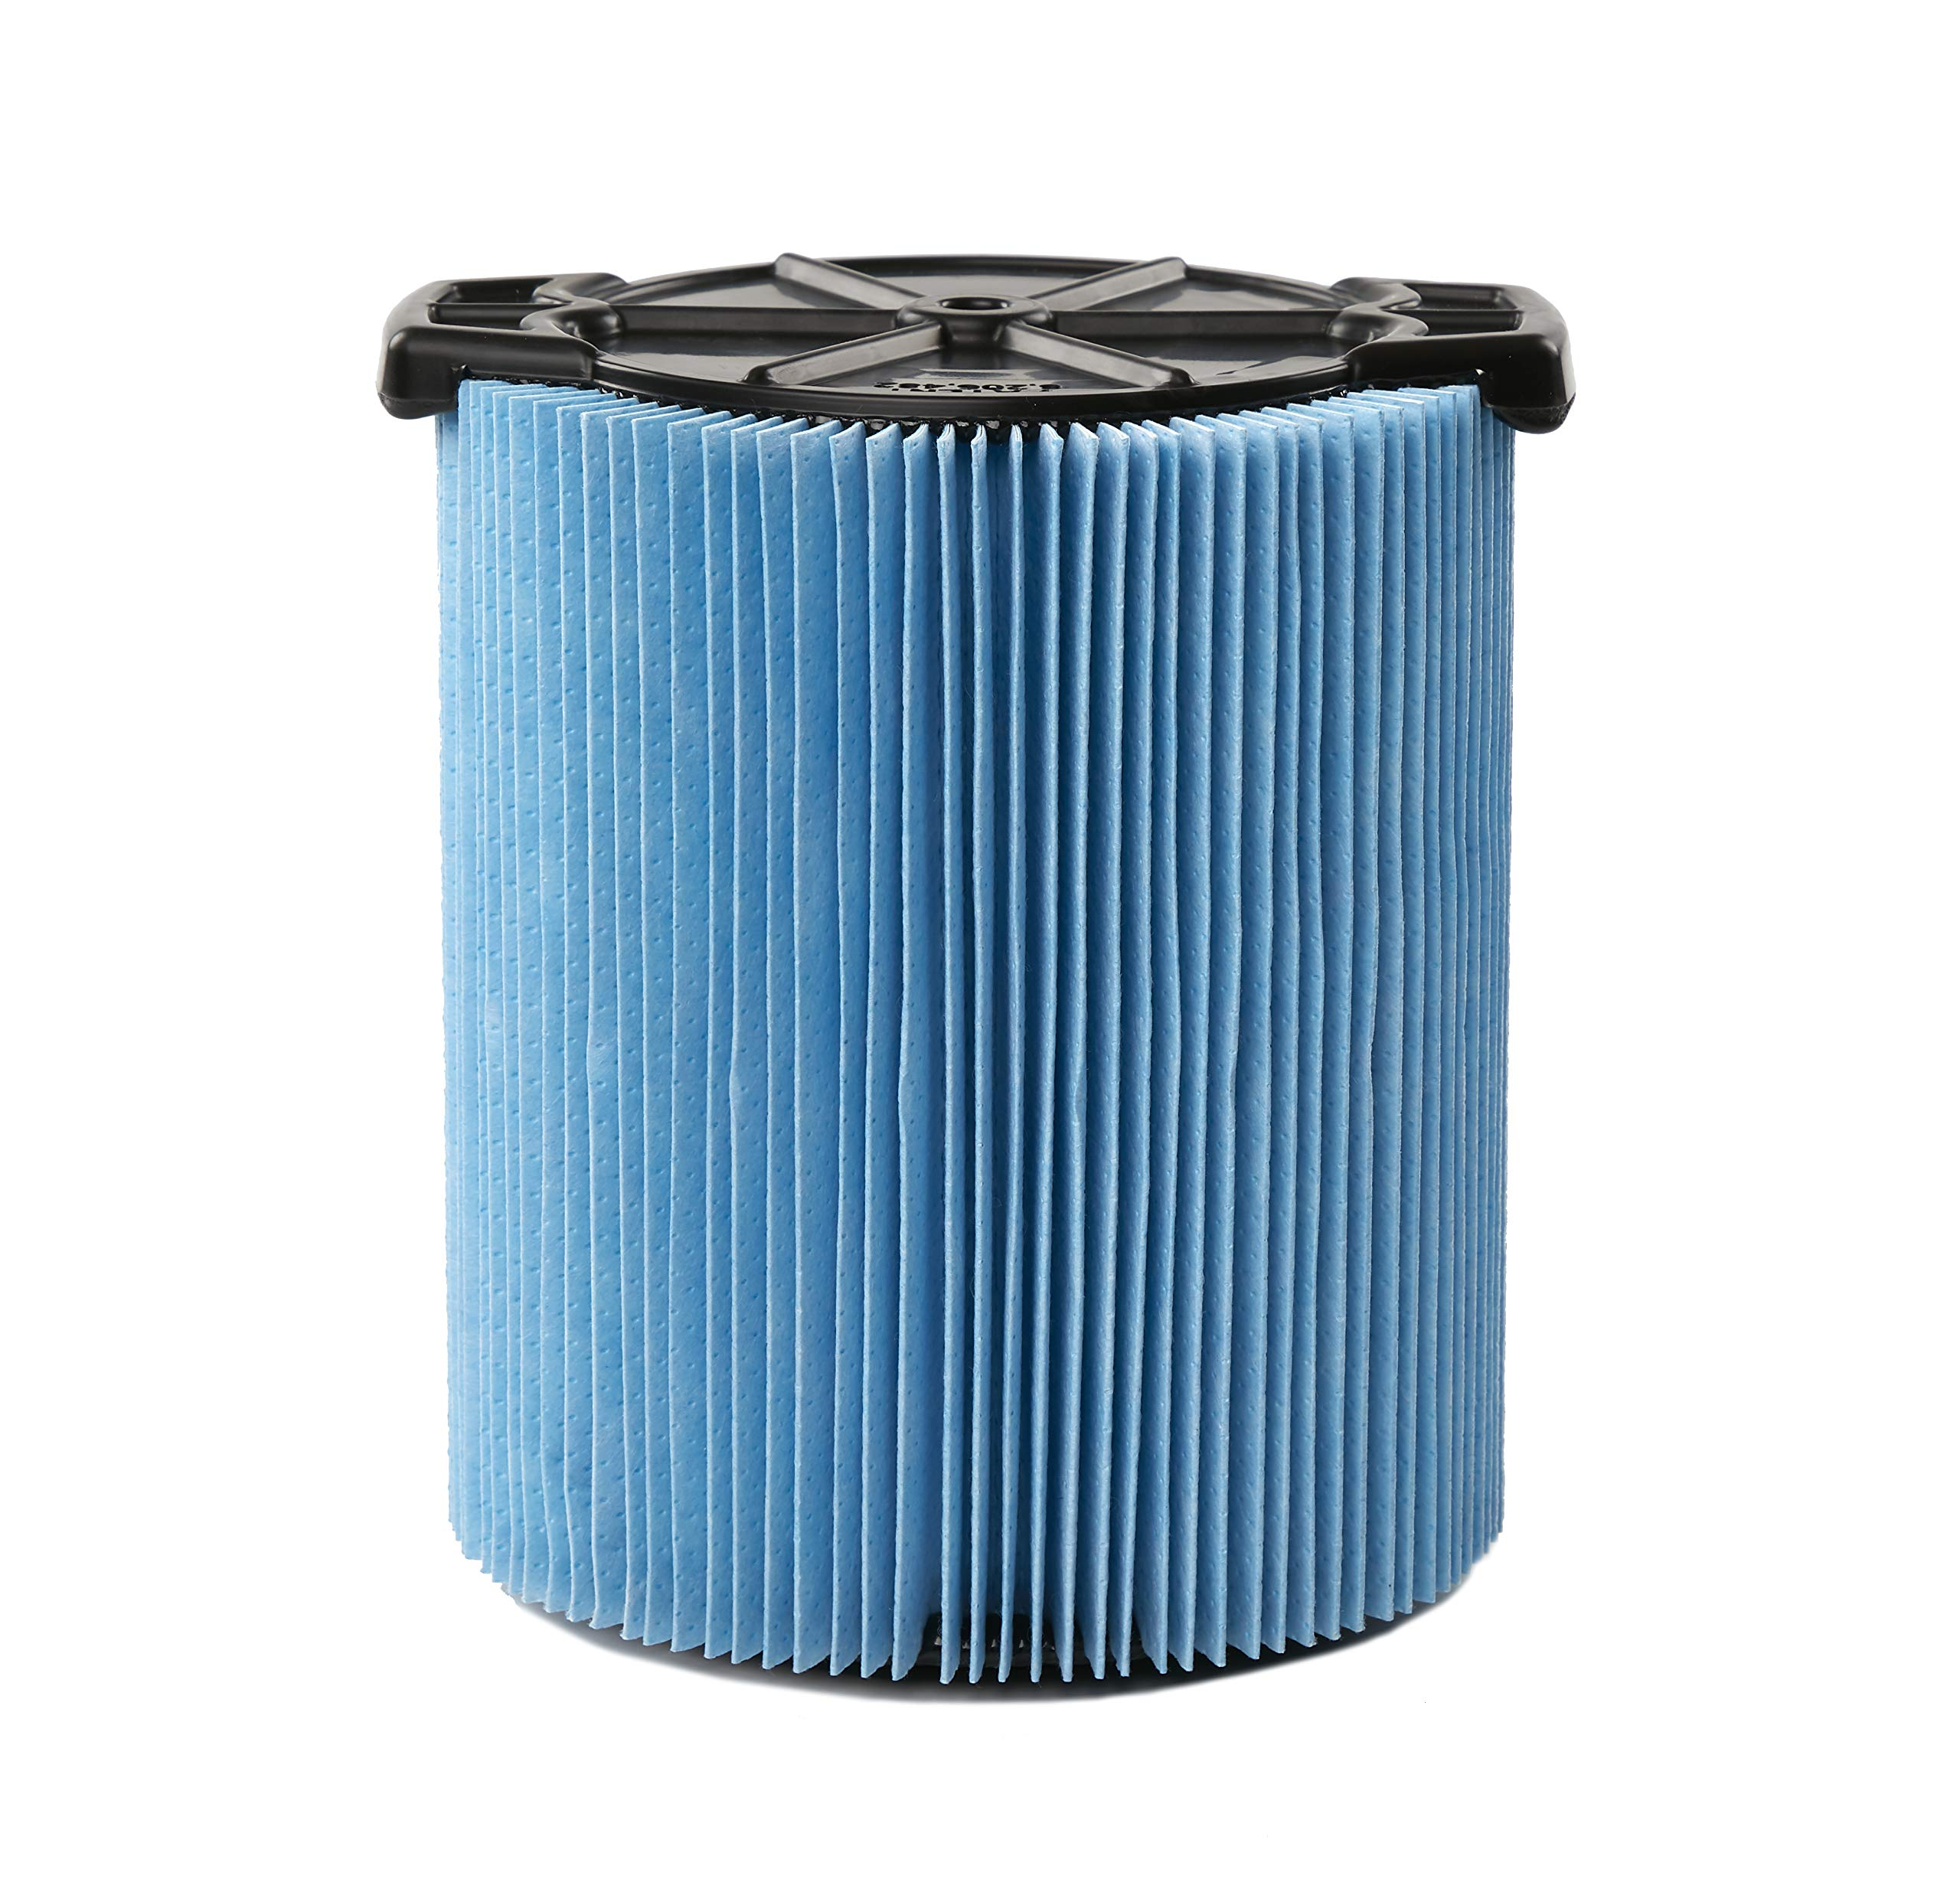 CRAFTSMAN CMXZVBE38751 Fine Dust Wet/Dry Vac Filter for 5 to 20 Gallon Shop Vacuums by Craftsman